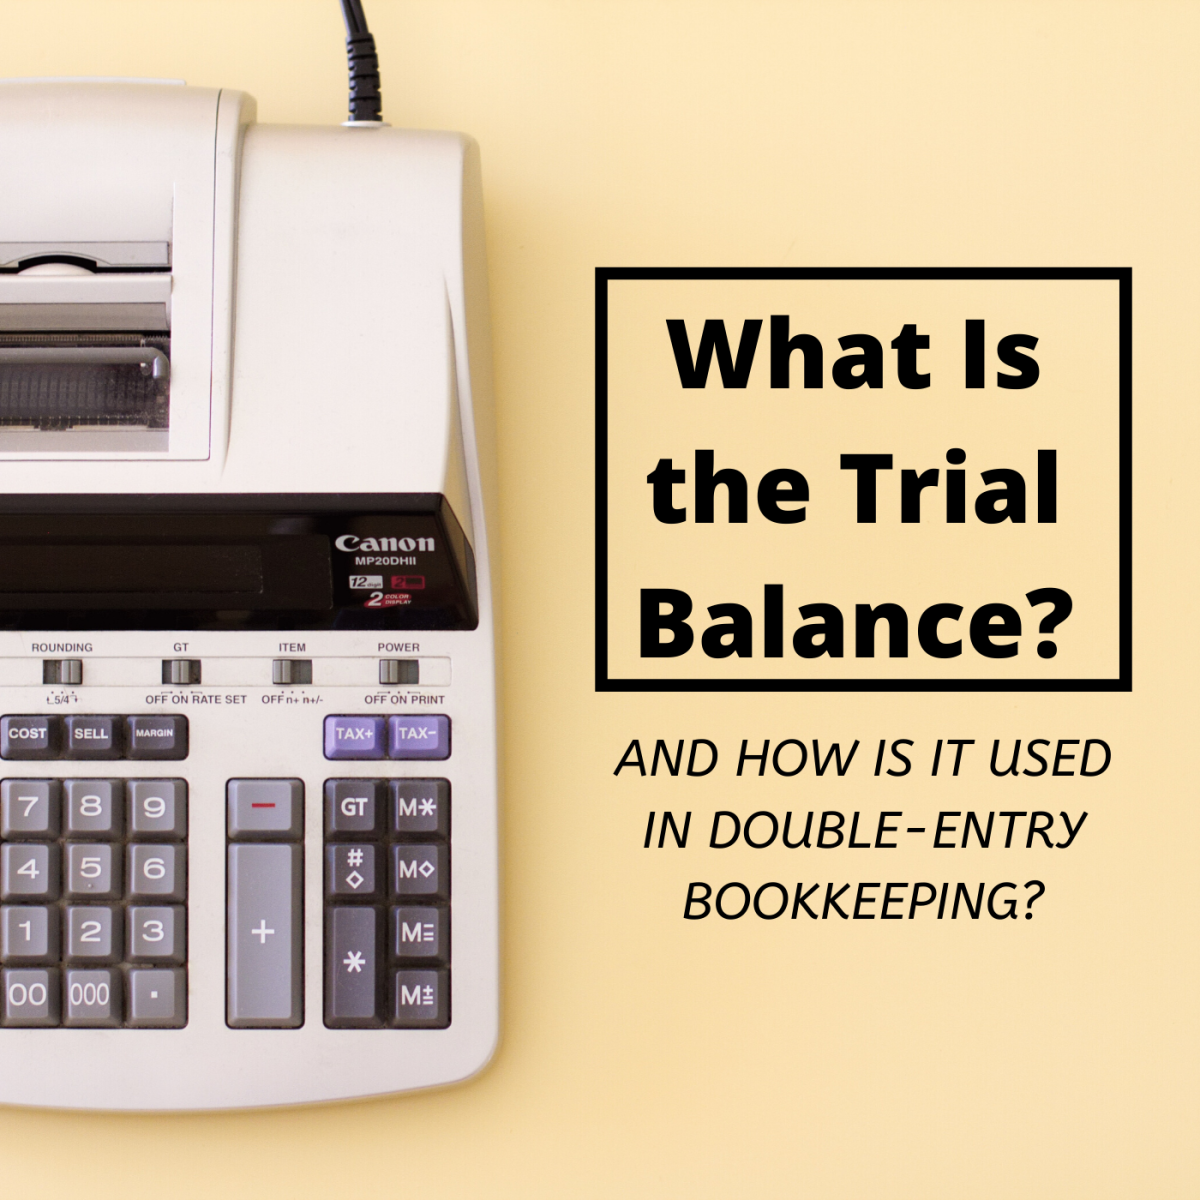 The trial balance is a useful self-check tool for bookkeepers, but in order to use it correctly, it's important to know which accounts are in the debit column and which are in the credit column.